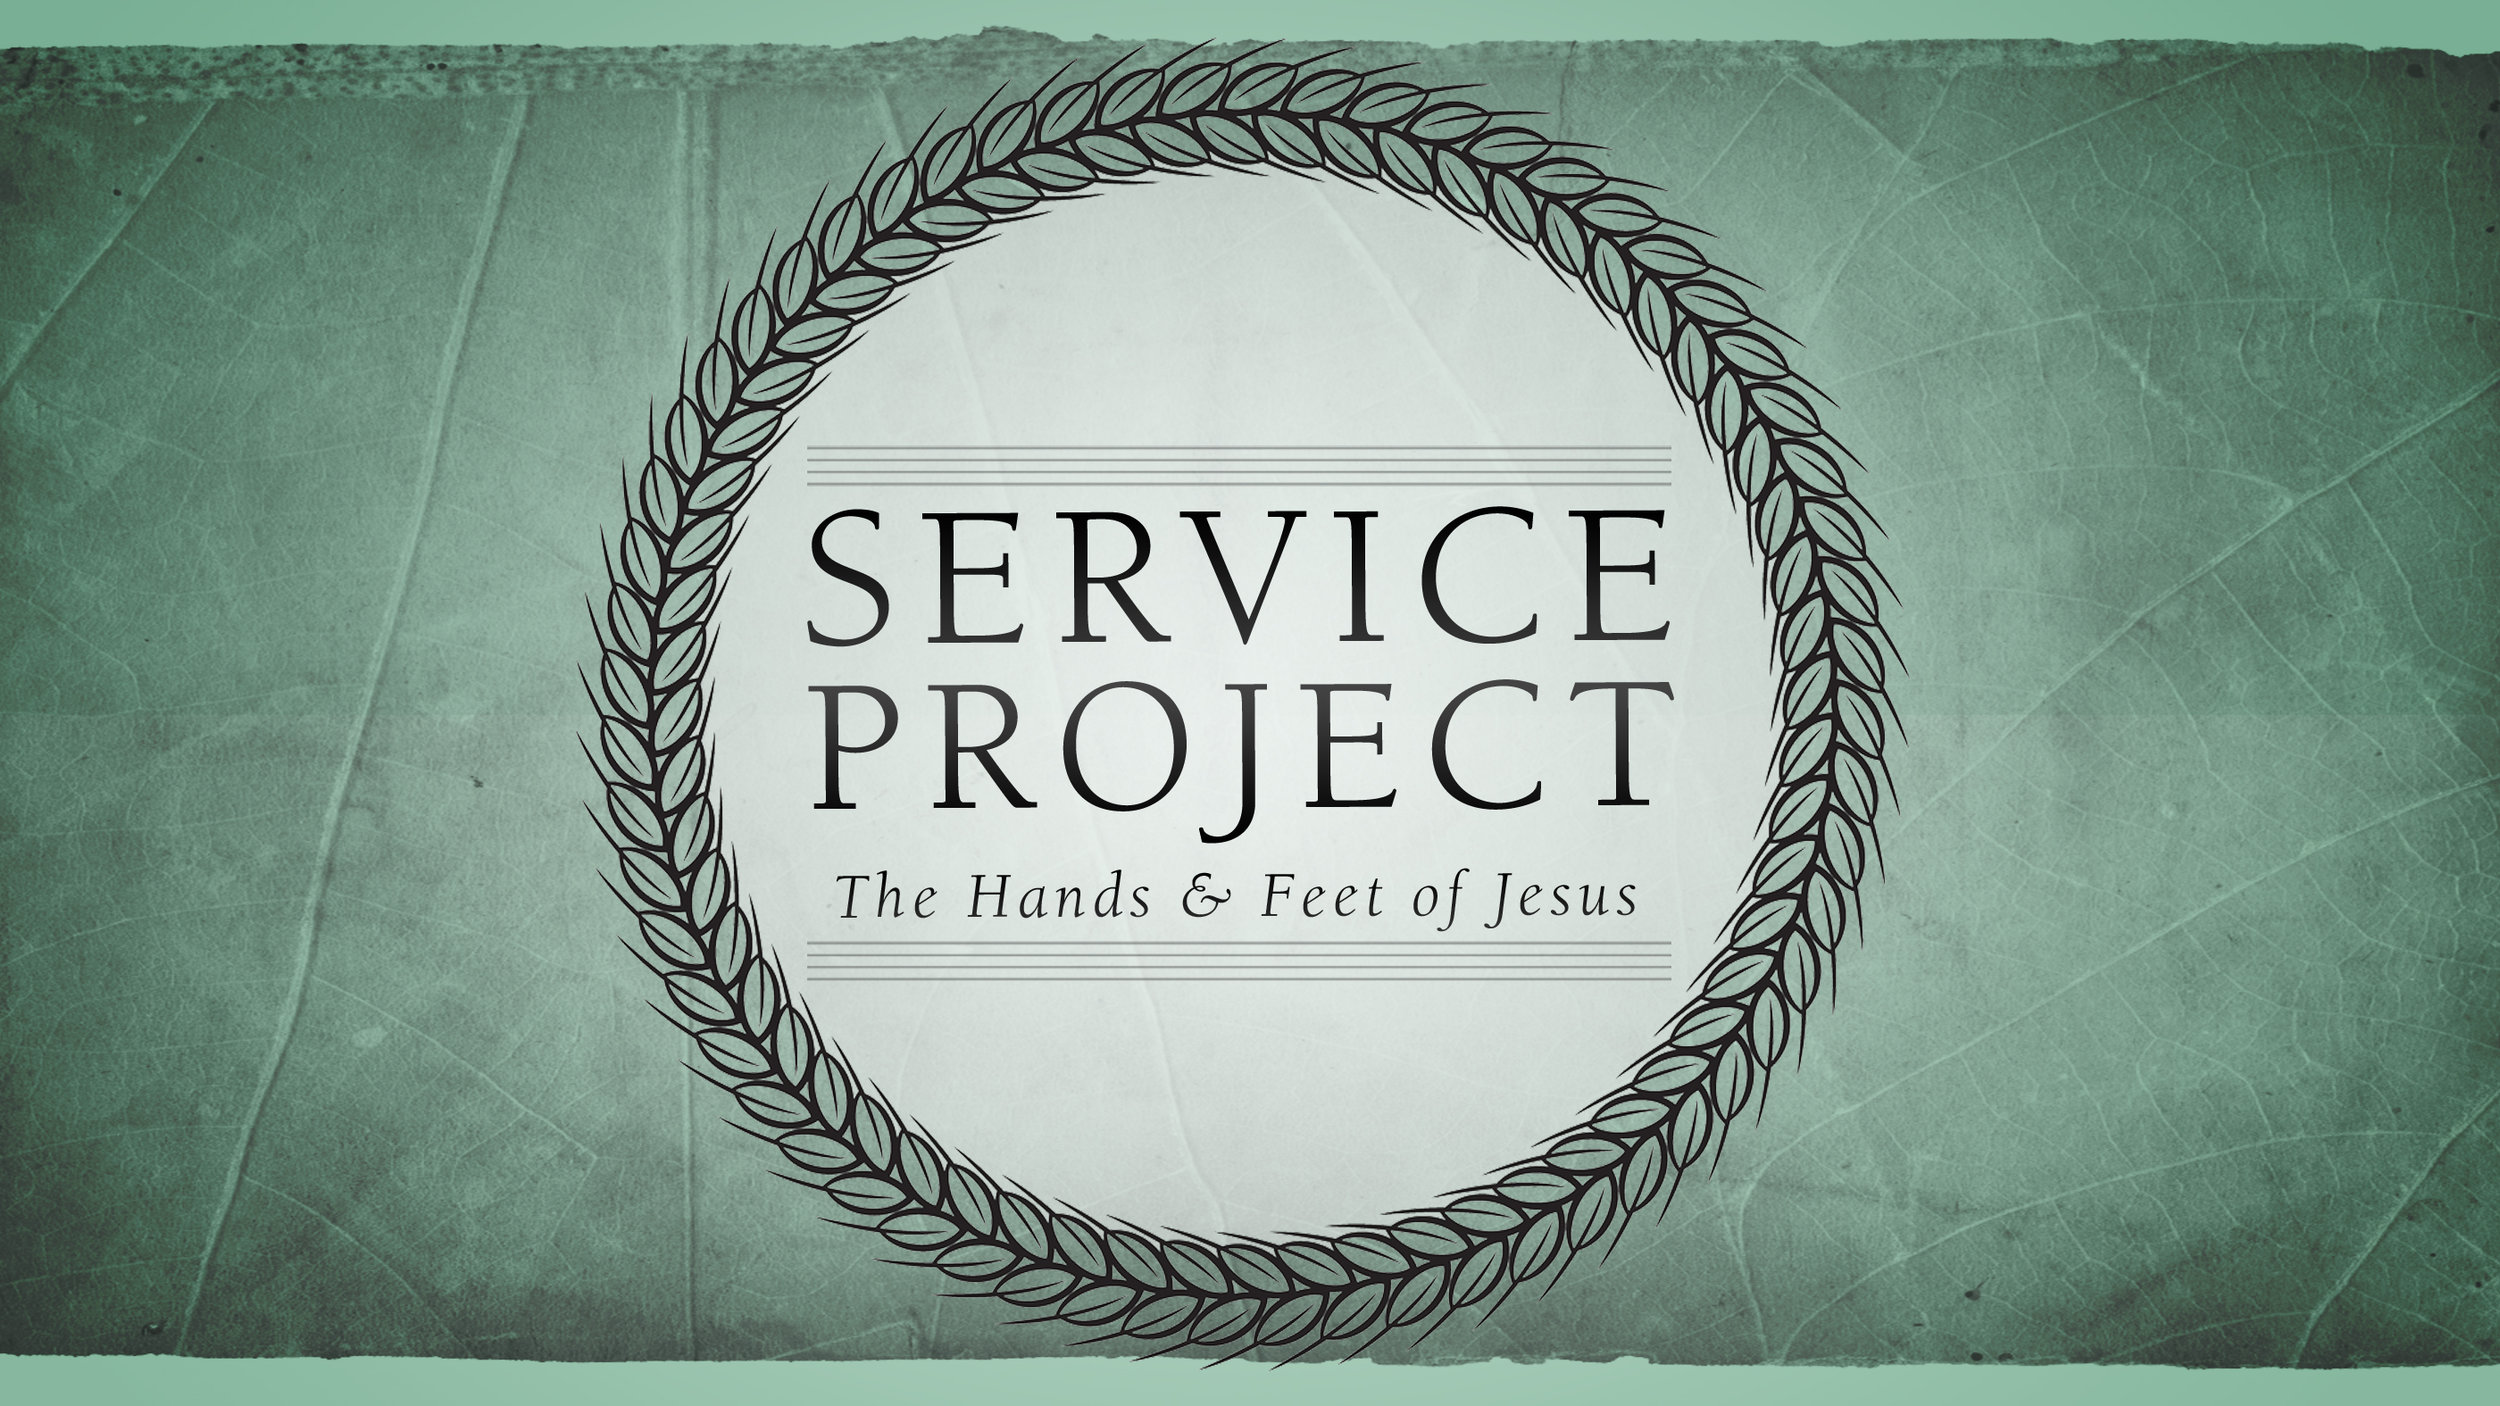 50 East Service Projects - Service projects are supported by members of 50 East include the CannonBall Ministry, Baptist Home, Sunrise Shelter and others. If you would like to help contact the church office for more information.